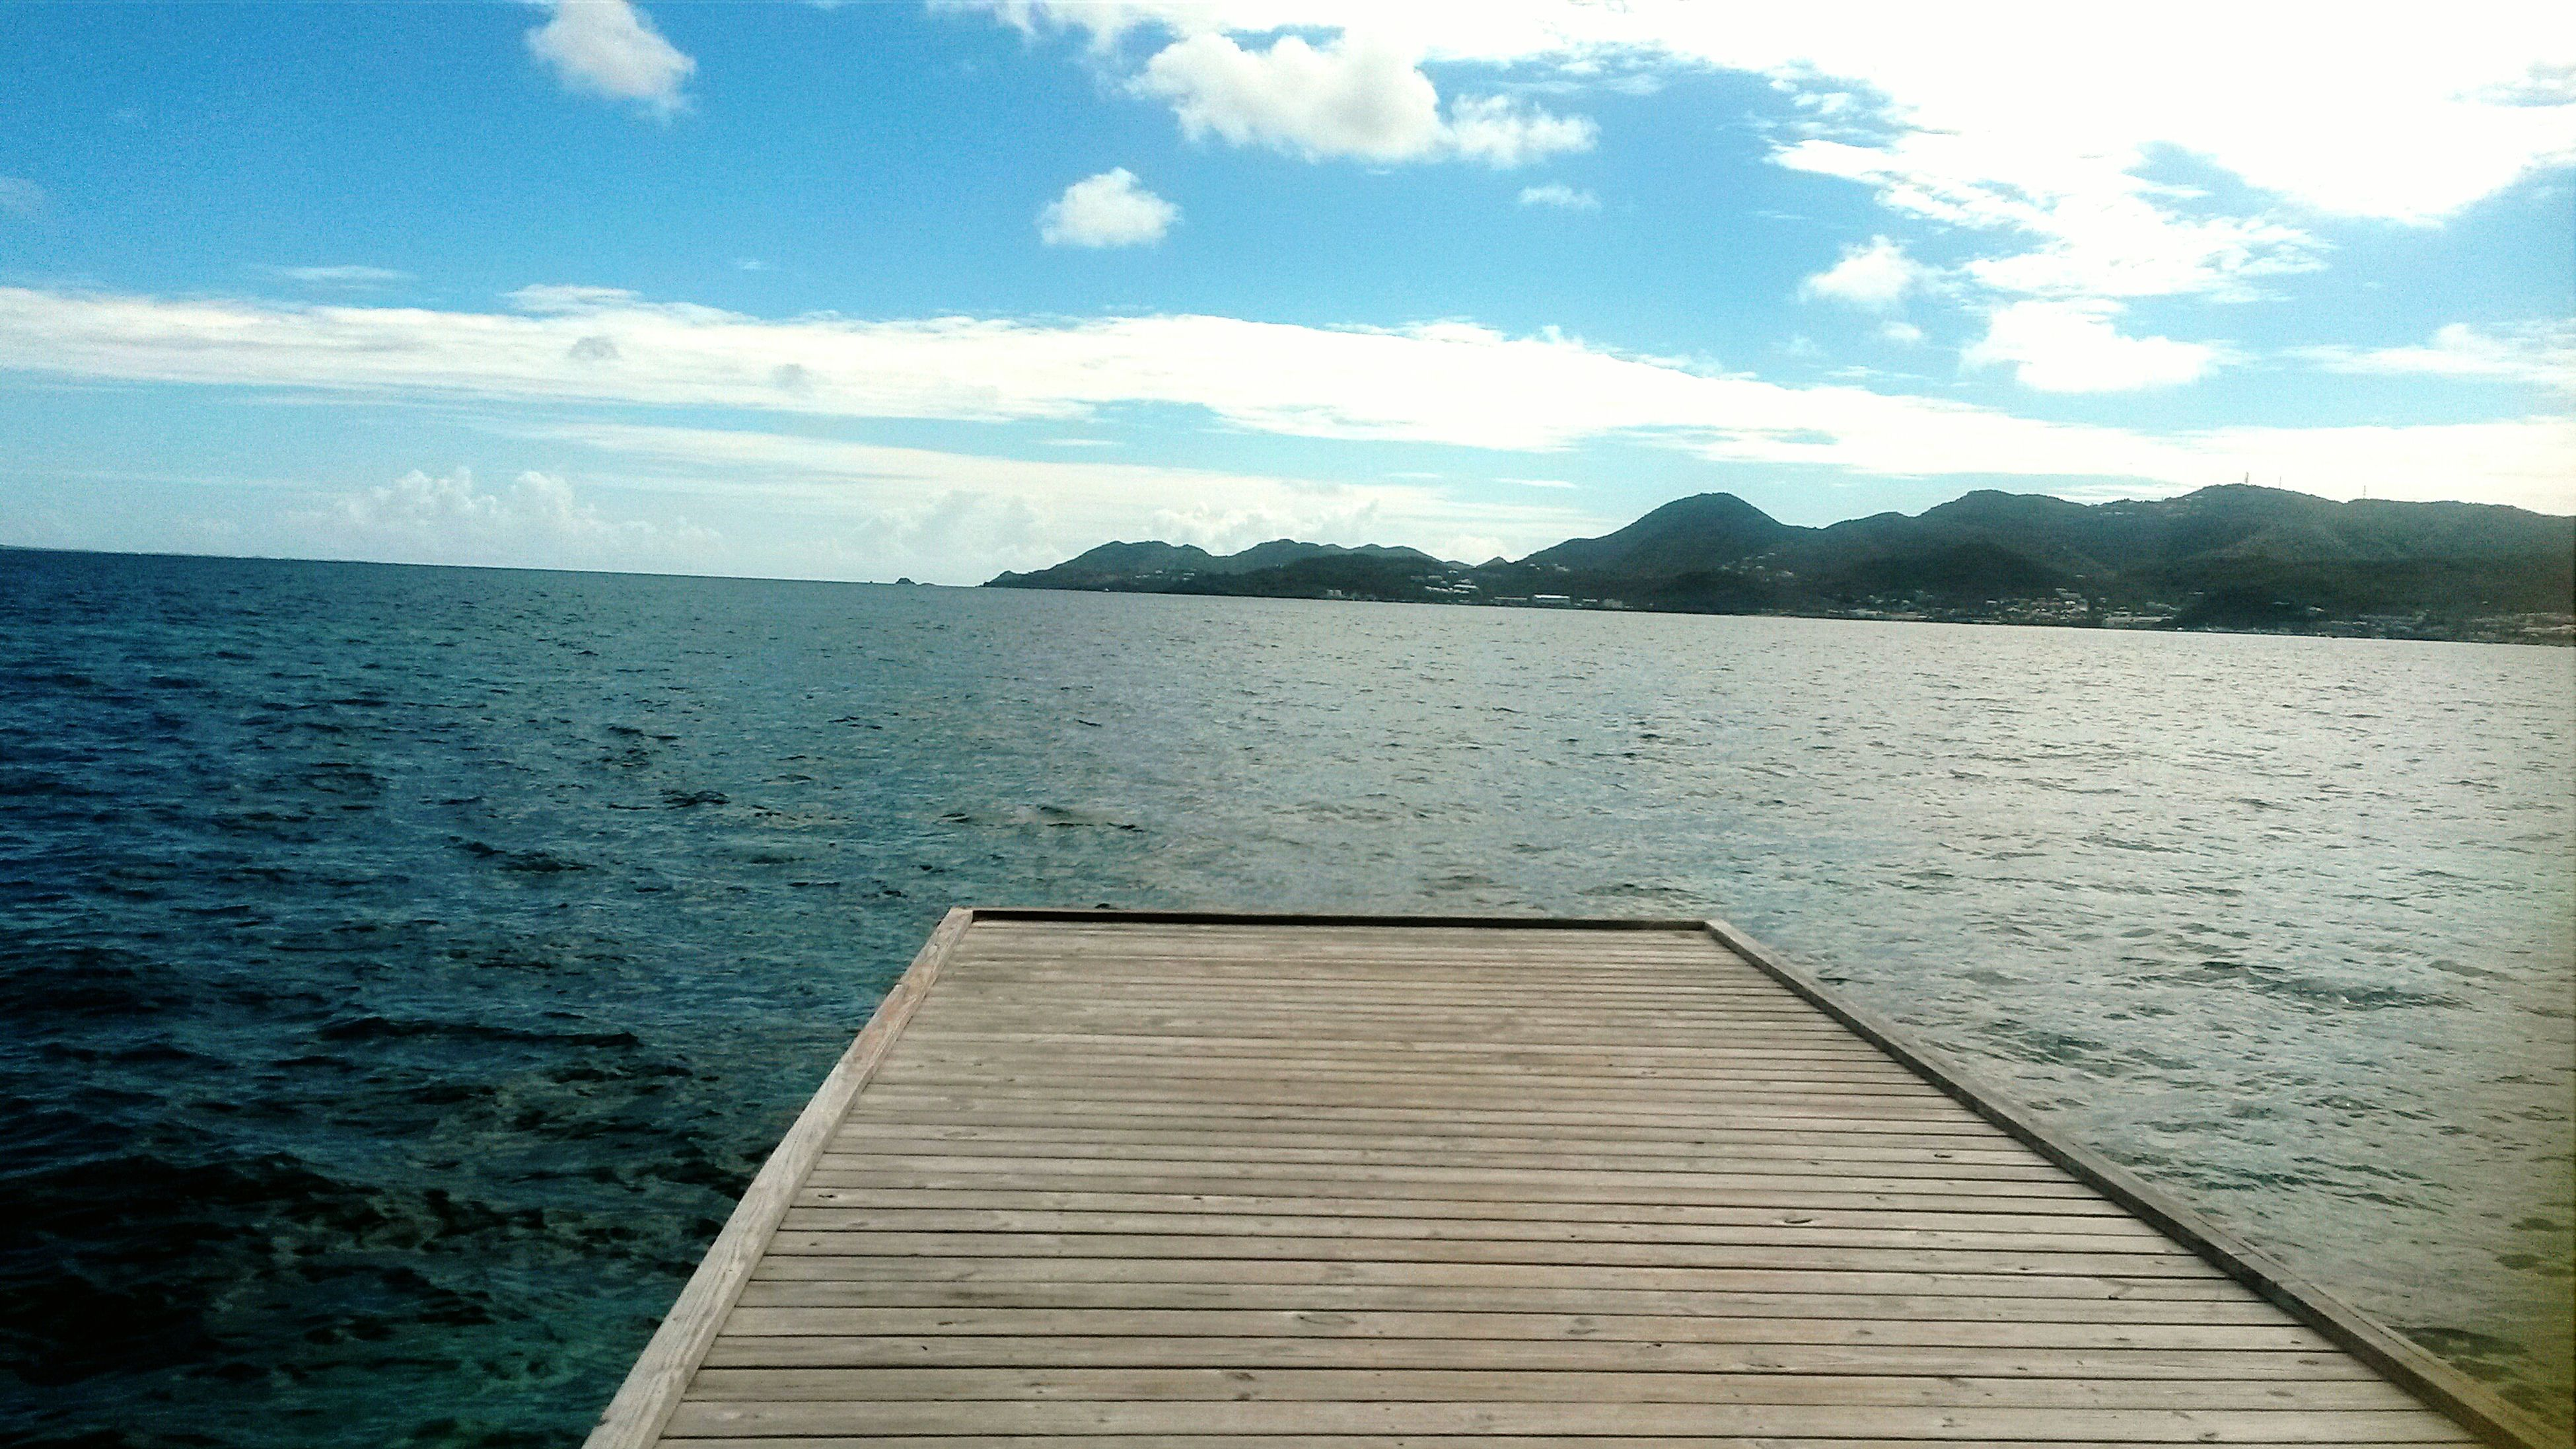 water, tranquil scene, sky, tranquility, scenics, sea, beauty in nature, pier, mountain, nature, blue, lake, idyllic, cloud - sky, rippled, cloud, wood - material, jetty, calm, day